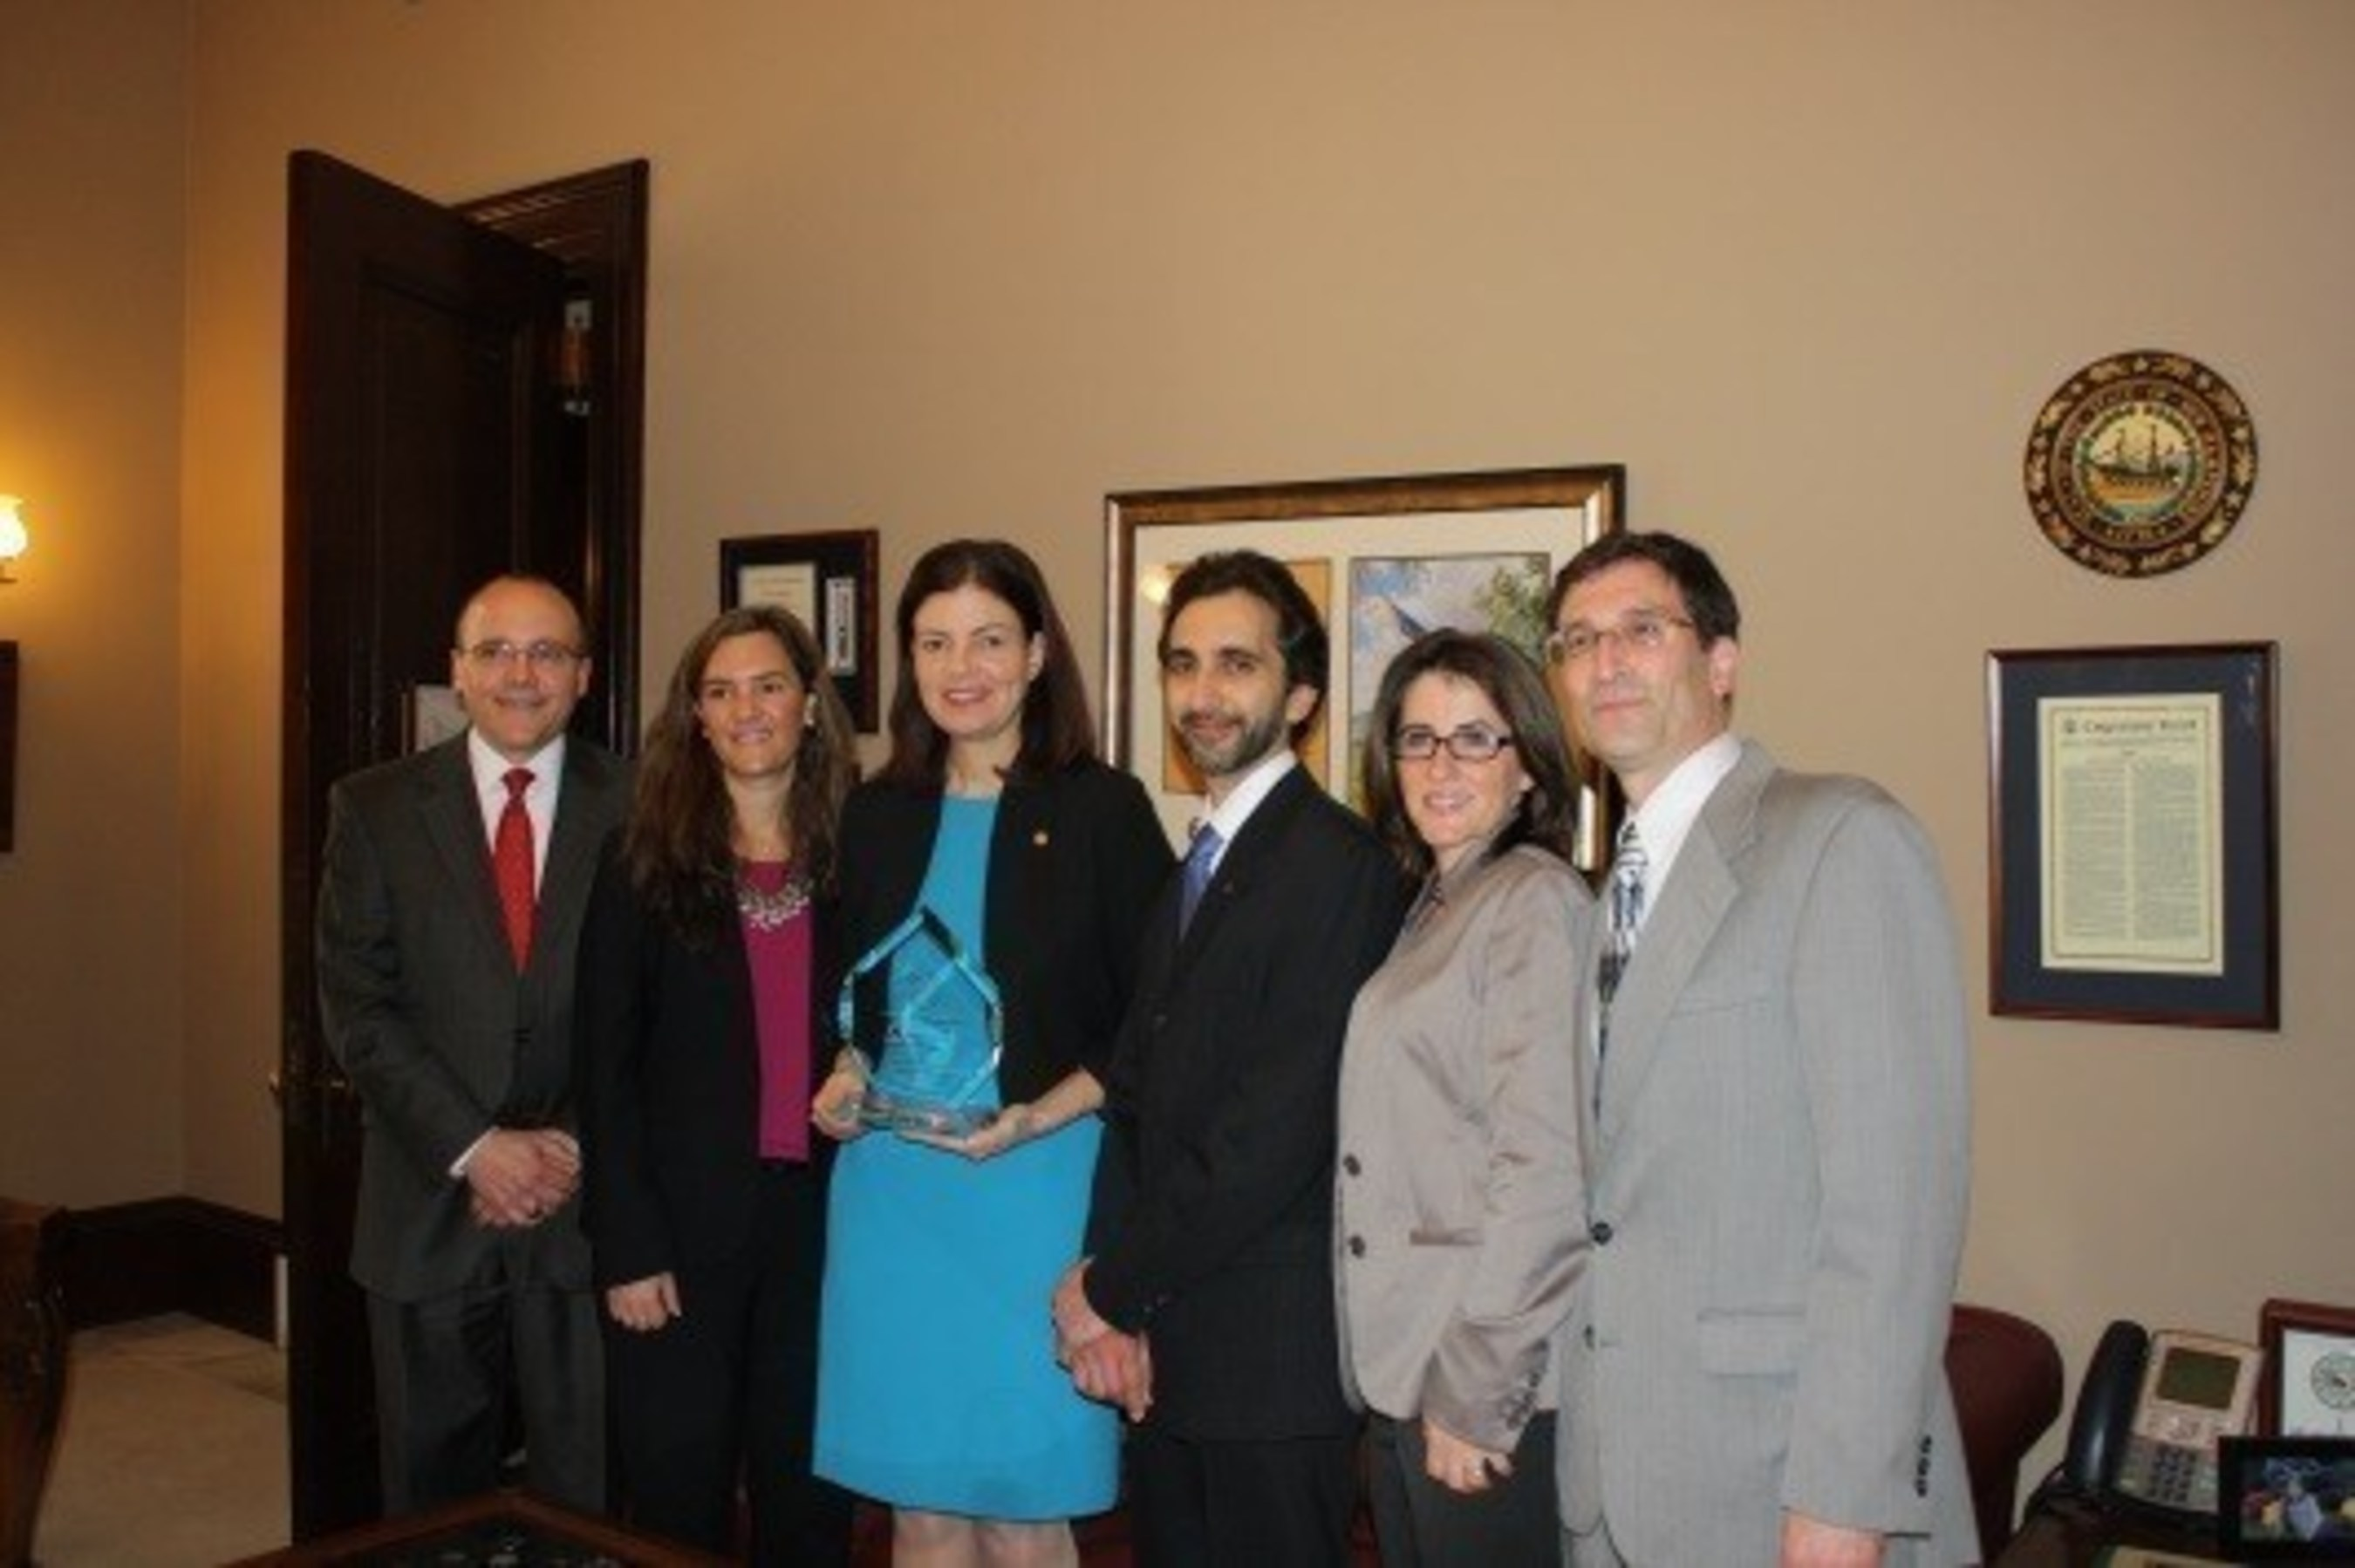 Pictured here (L to R): Emerson CEO Andy Greenawalt; Dr. Jaclyn Chasse, VP of Scientific and Regulatory Affairs for Emerson; US Senator Kelly Ayotte; Dr. Kasra Pournadeali, AANP President; Dr. Tina Beaudoin, Senior Medical Educator at Emerson; and Michael Jawer, AANP Director of Government & Public Affairs.